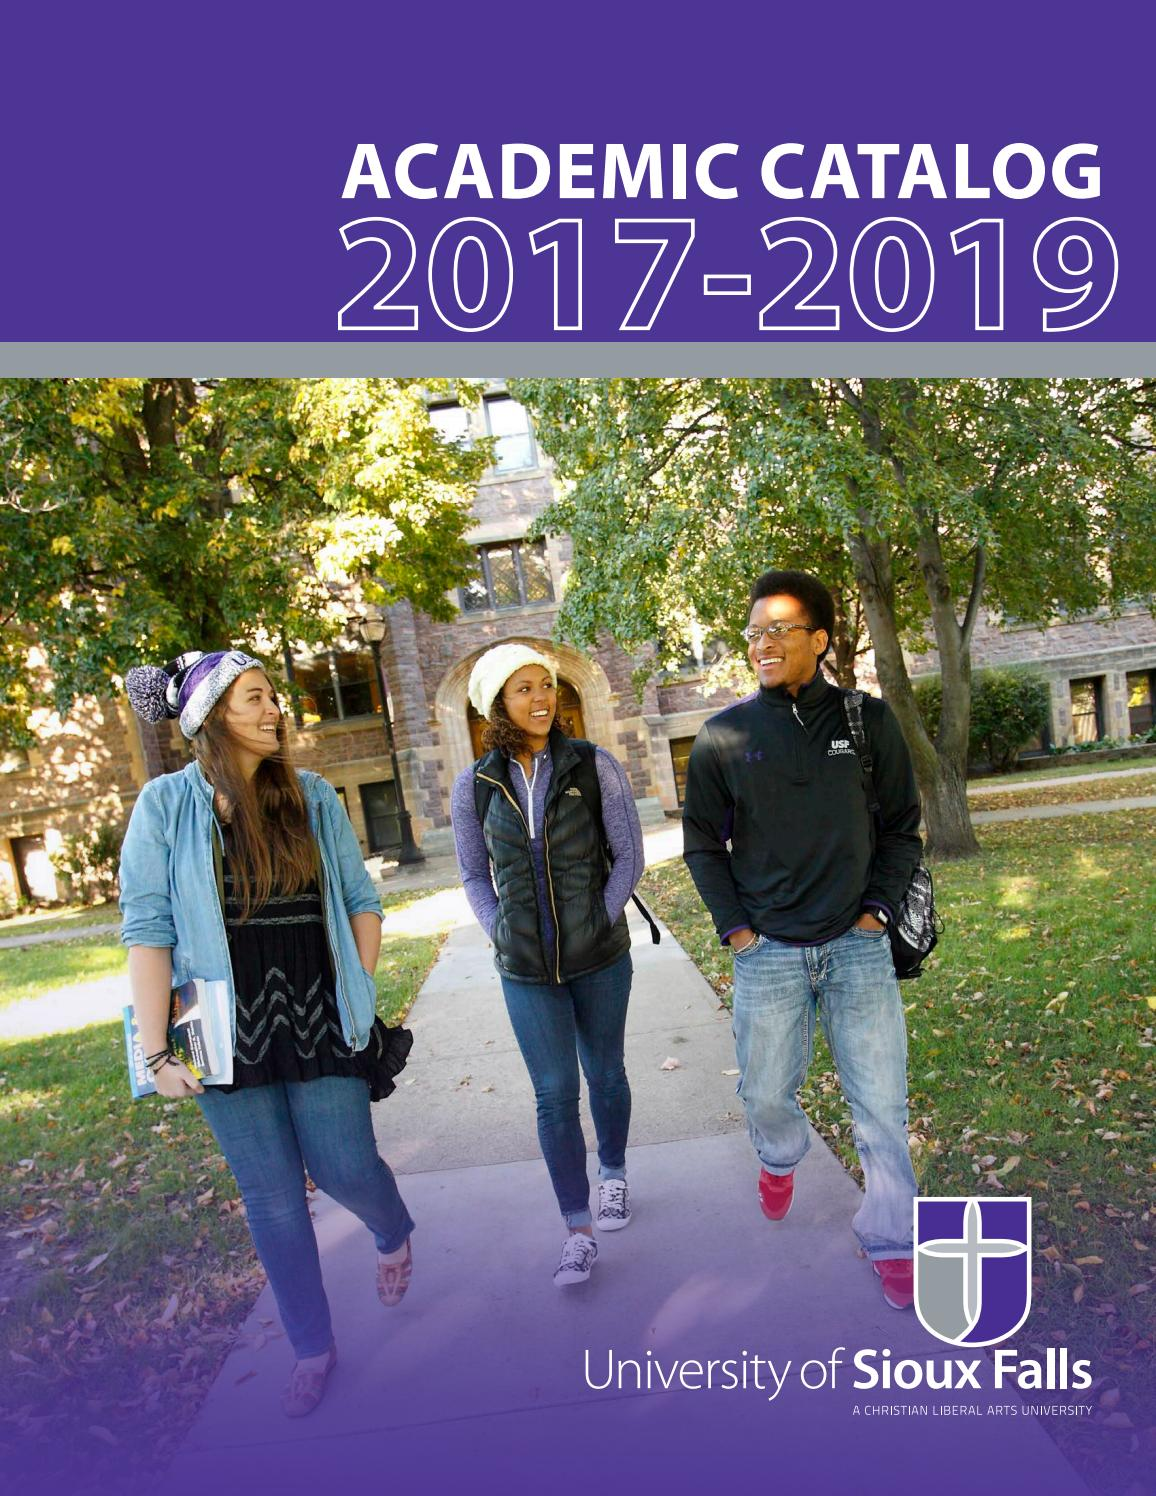 2017-2019 USF Academic Catalog by University of Sioux Falls - issuu